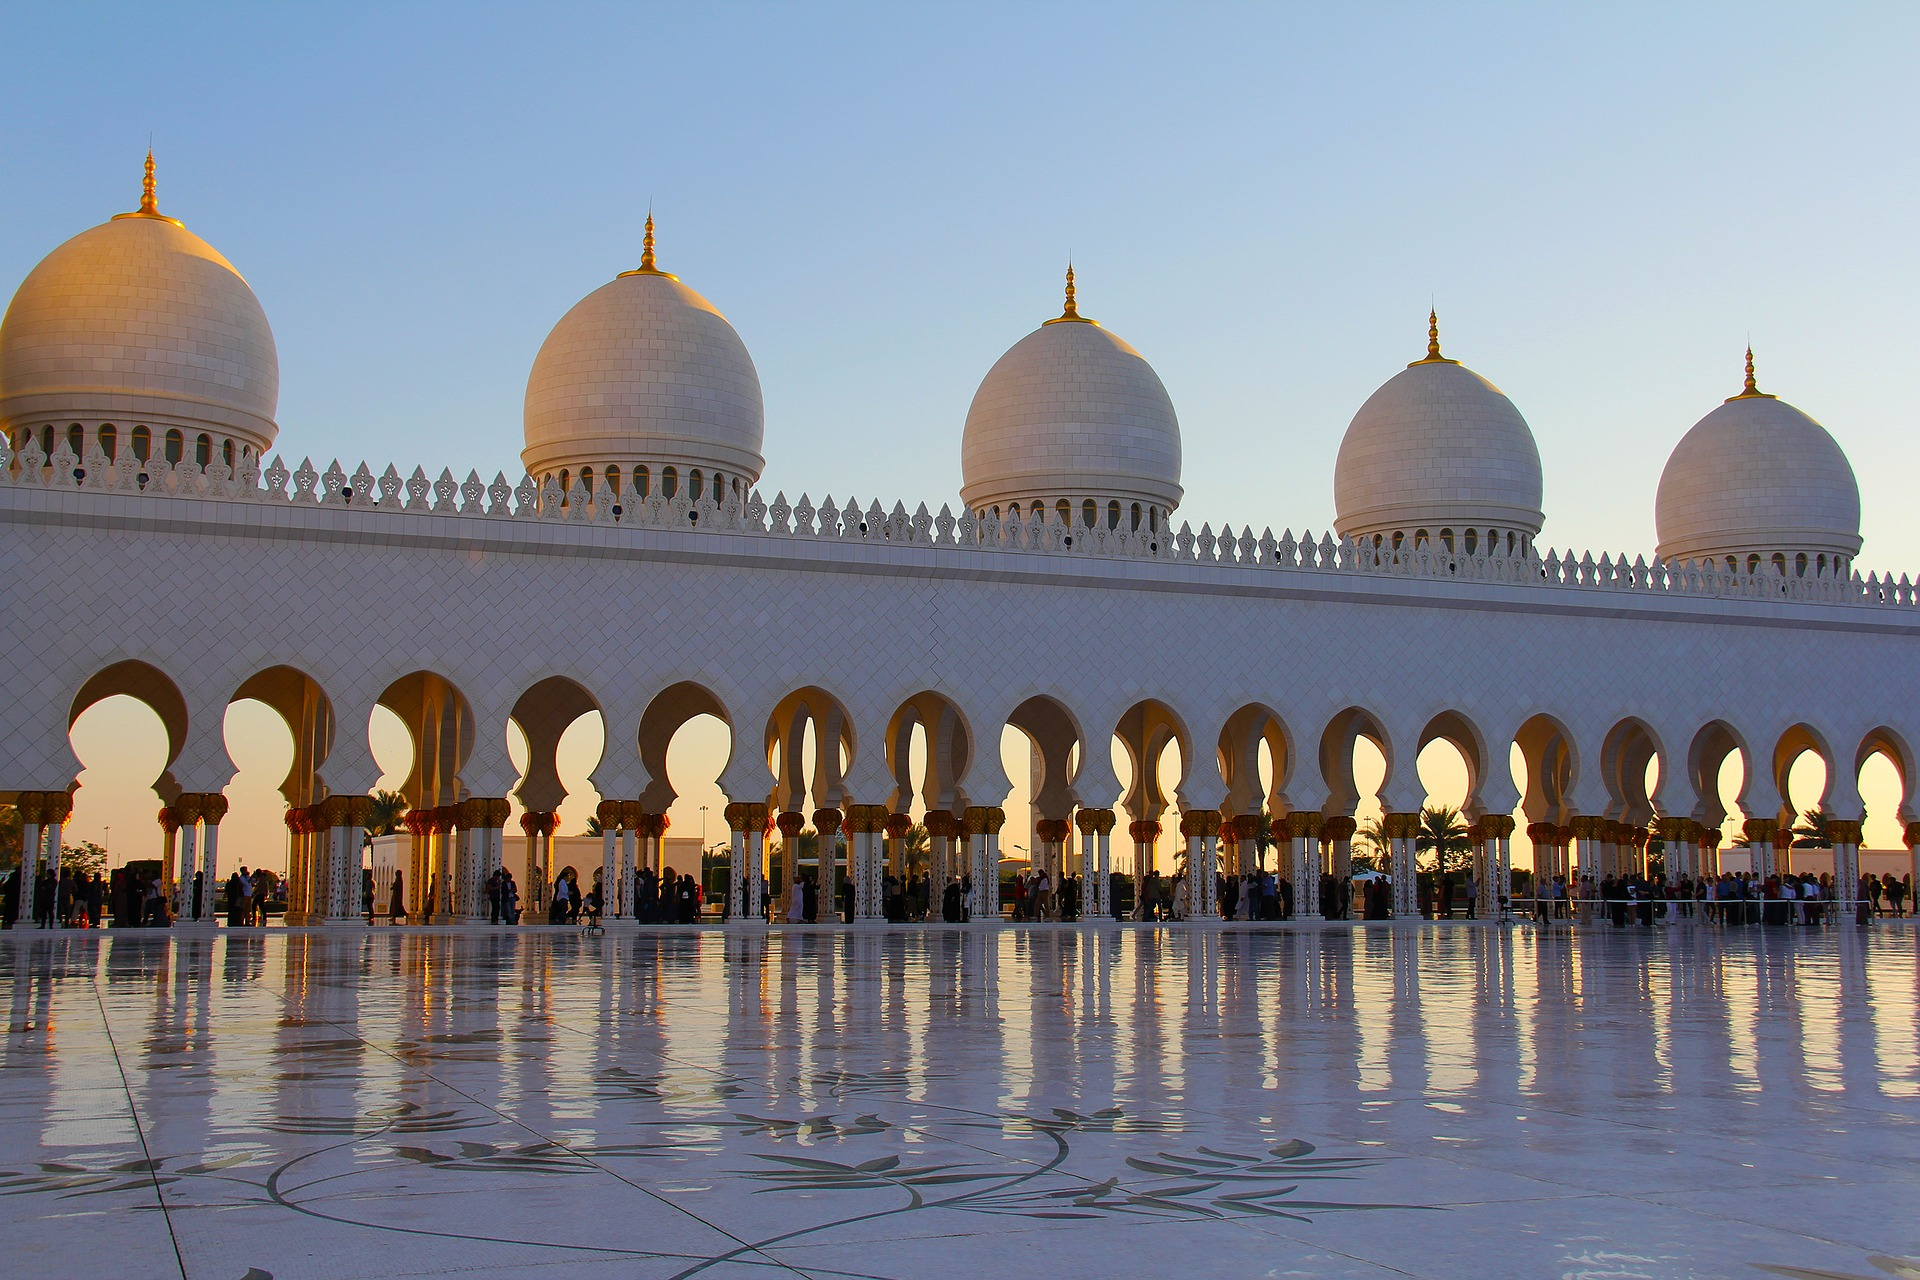 Image of the Sheikh Zayed Grand Mosque in the UAE